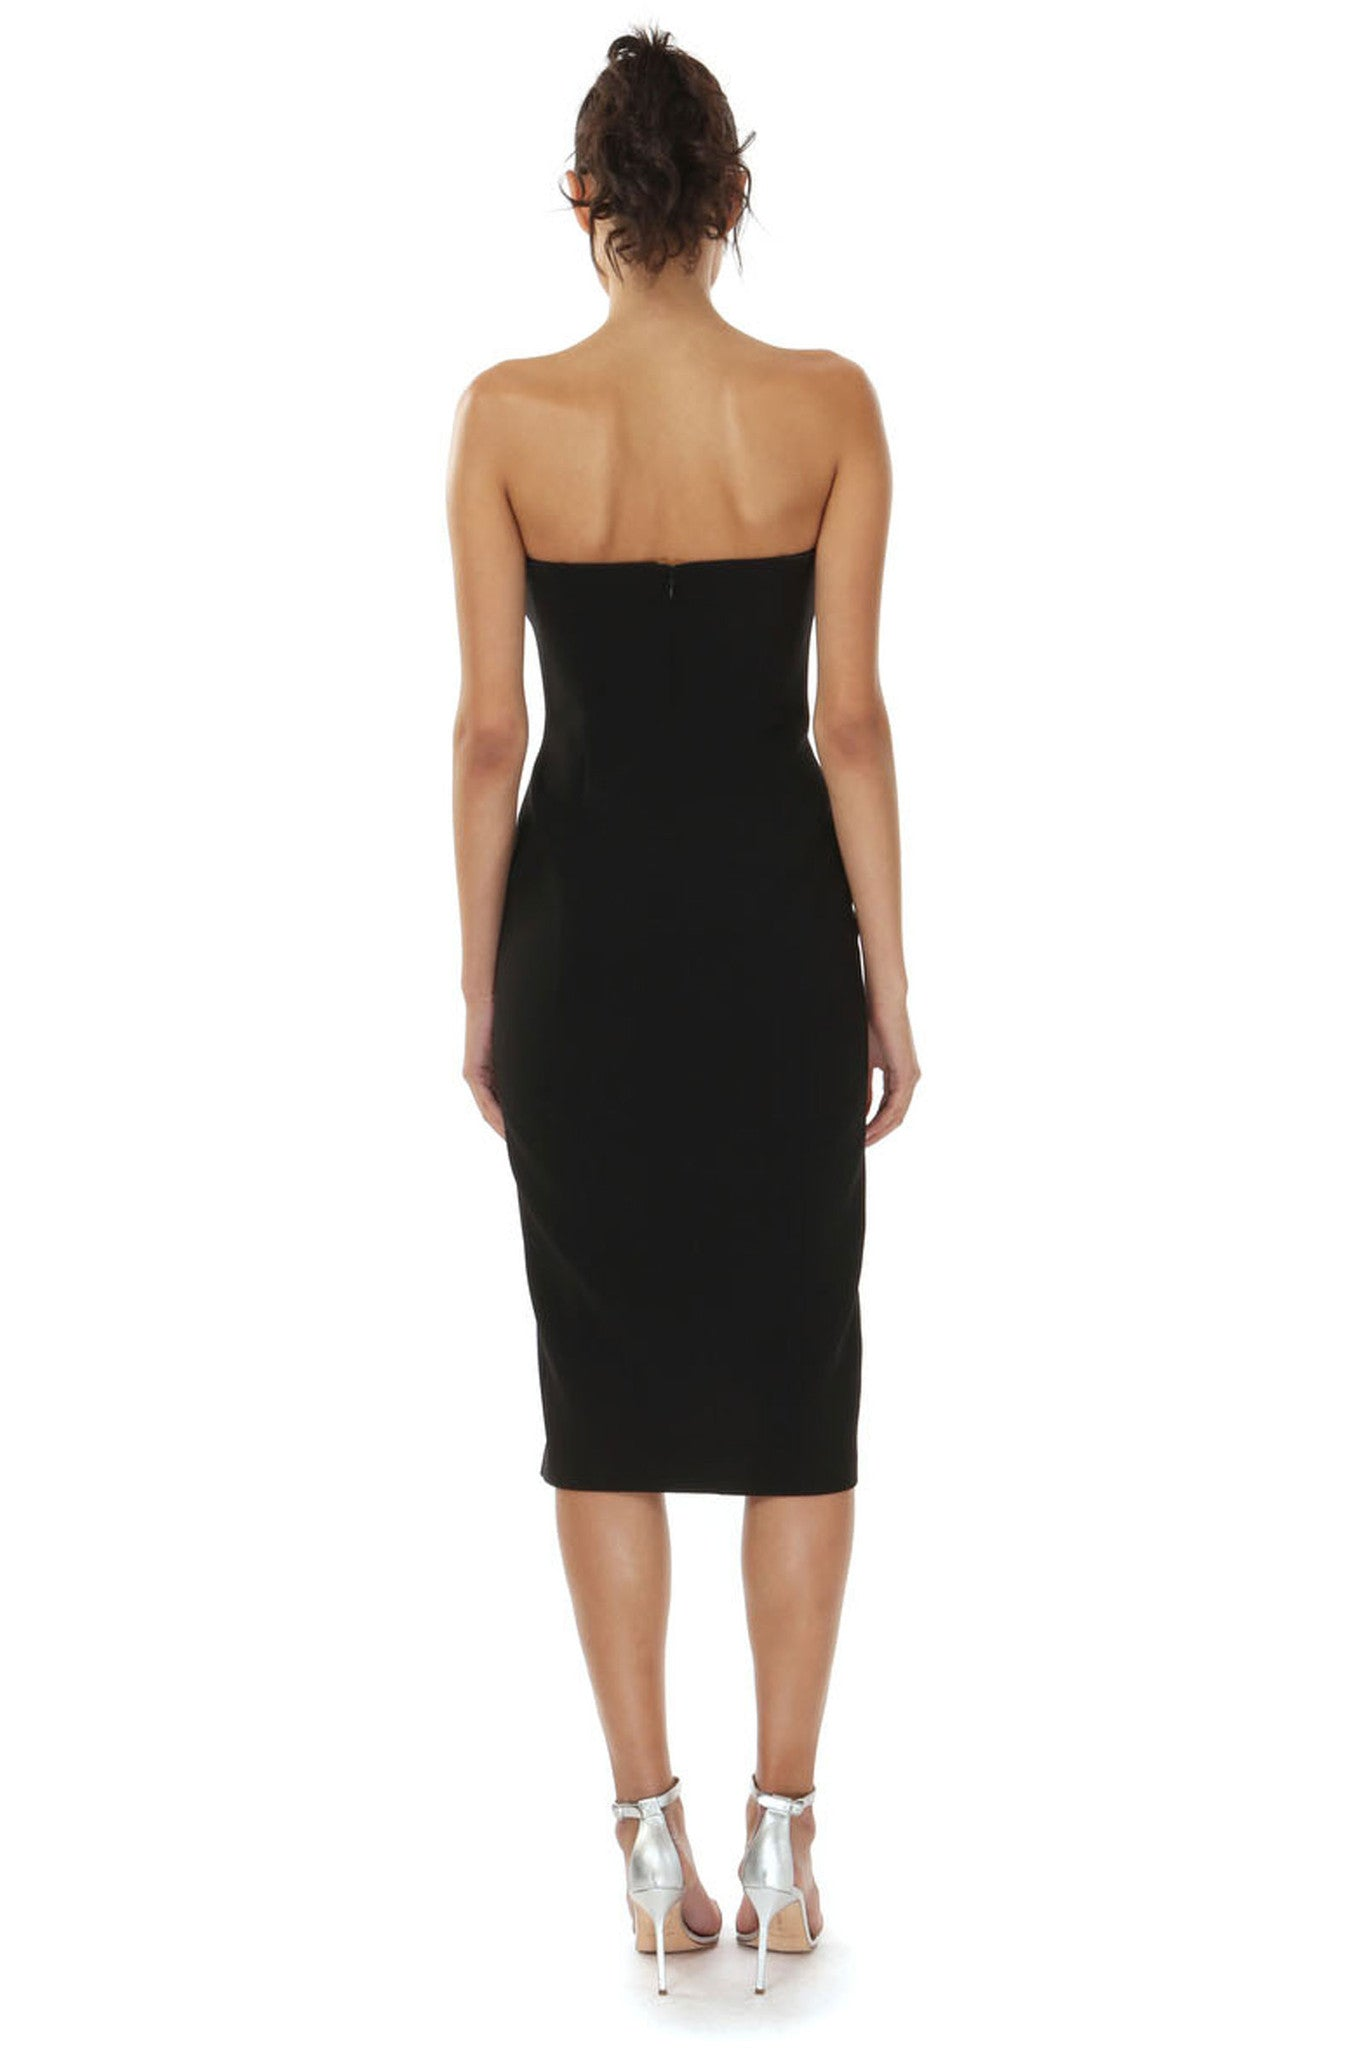 THOMPSON BLACK STRAPLESS DRESS